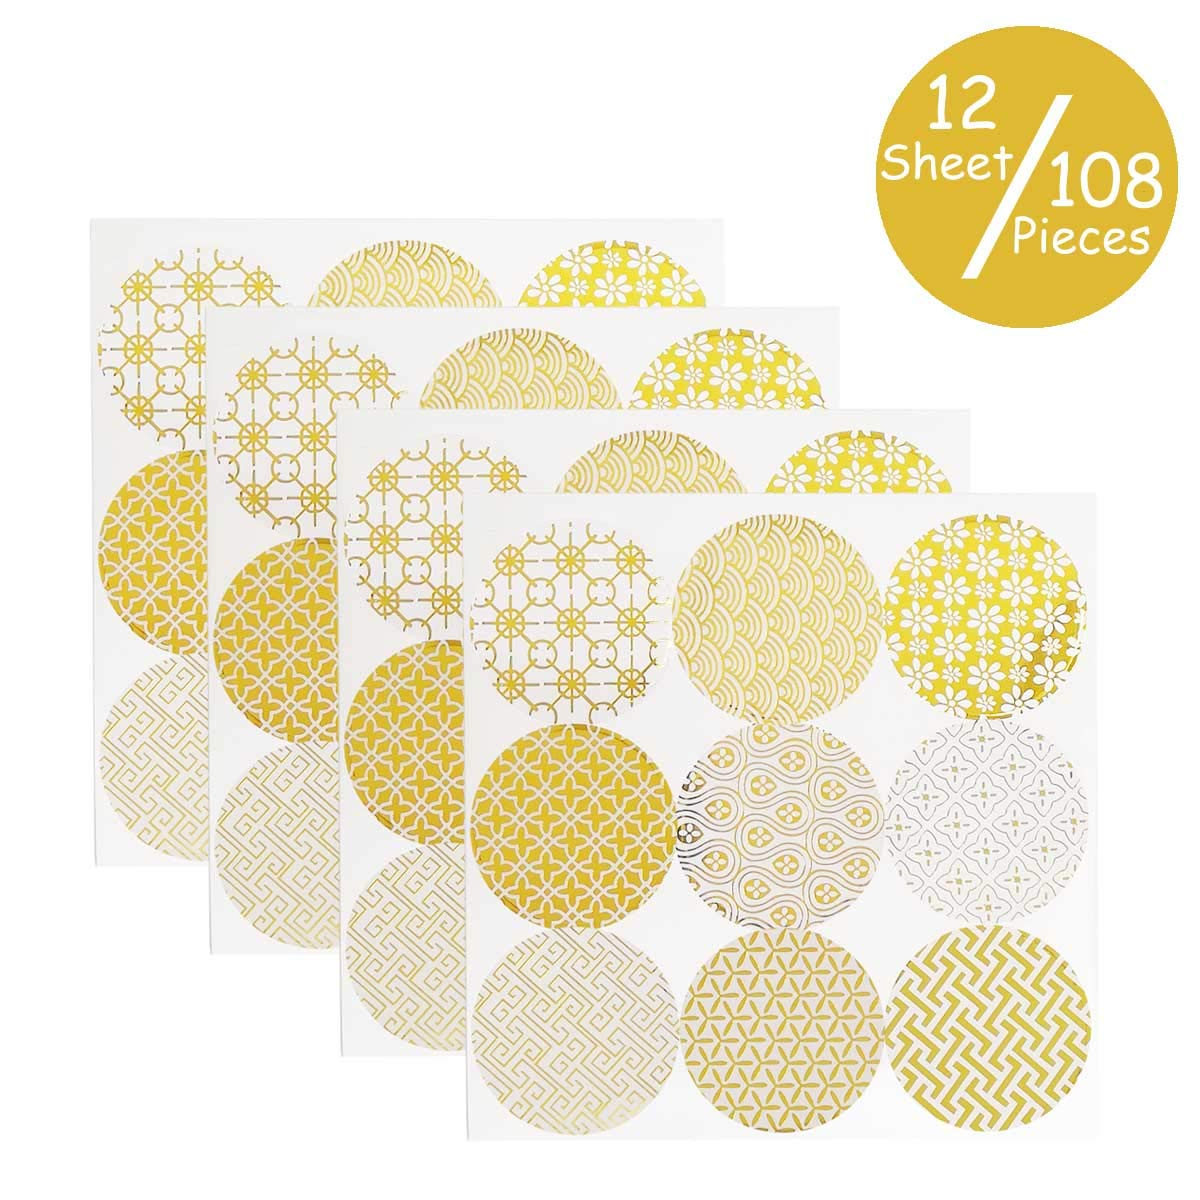 TTSAM 12 Sheets Decorative Gold Circle Envelope Seals Stickers Gift Boxes Stickers Party Favor Bags Stickers Label Stickers Holiday Birthday Party Wedding Baby Shower Decorations 108 Pieces